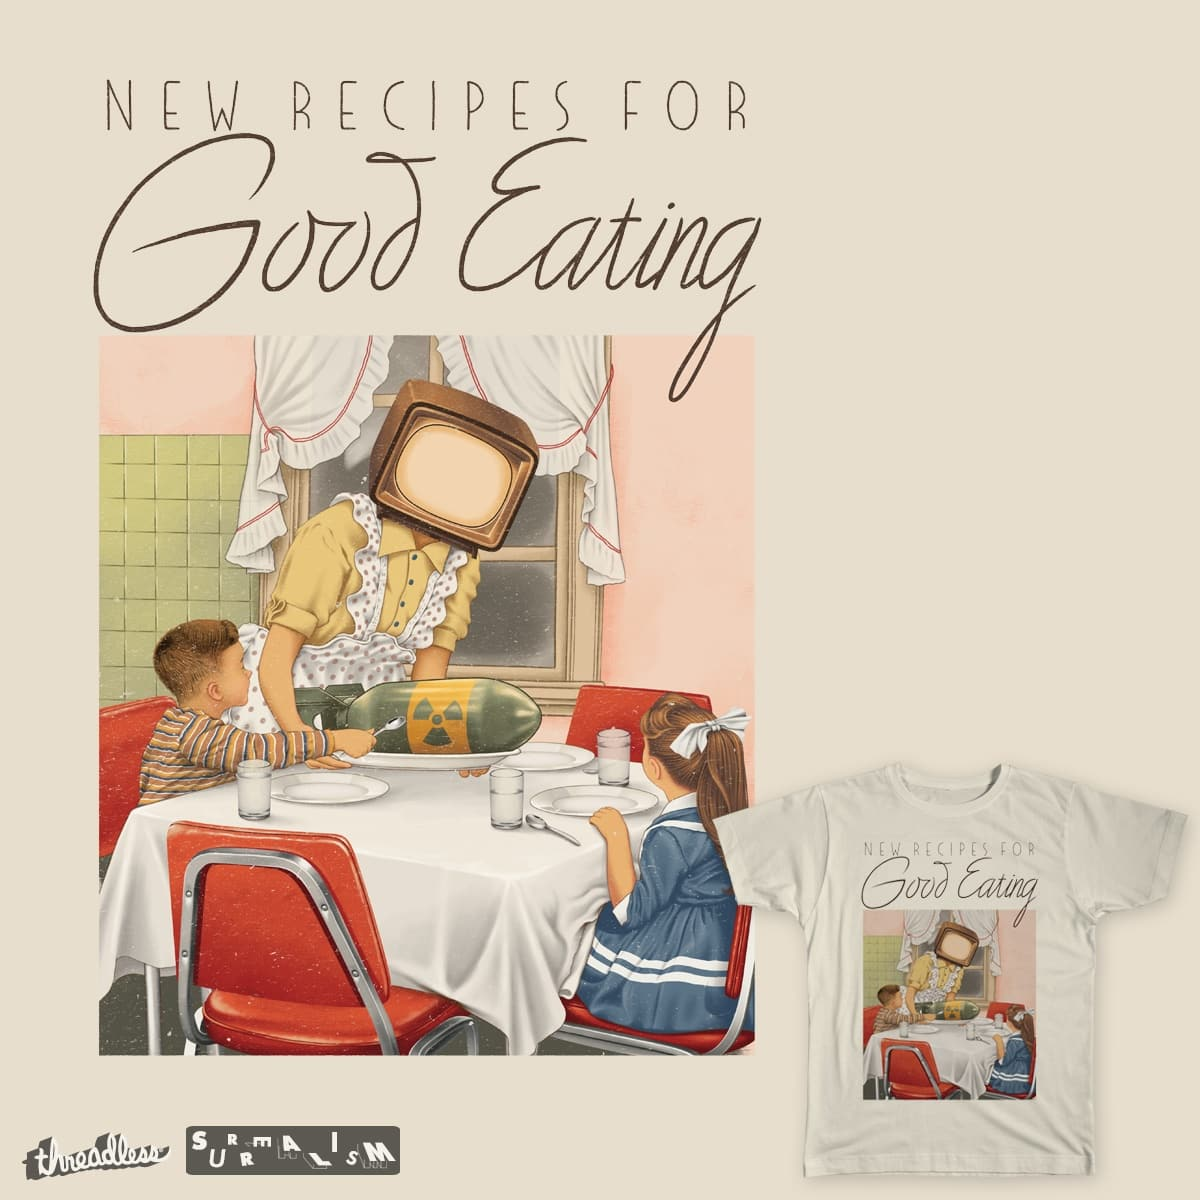 Good Eating by aanmyers on Threadless